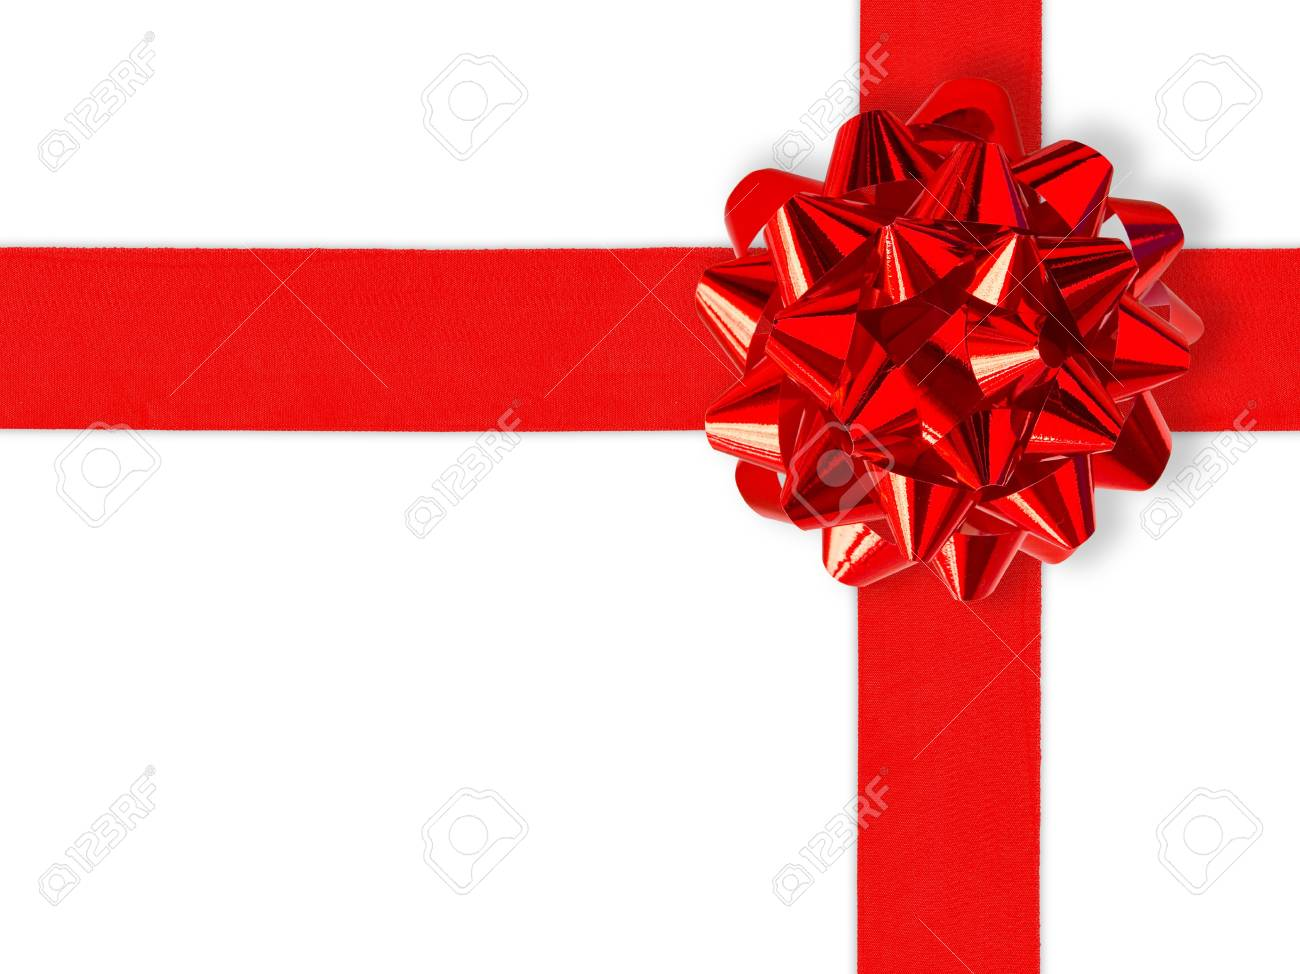 Red Gift Ribbon Over White (with clipping path for easy background removing if needed) Stock Photo - 633323